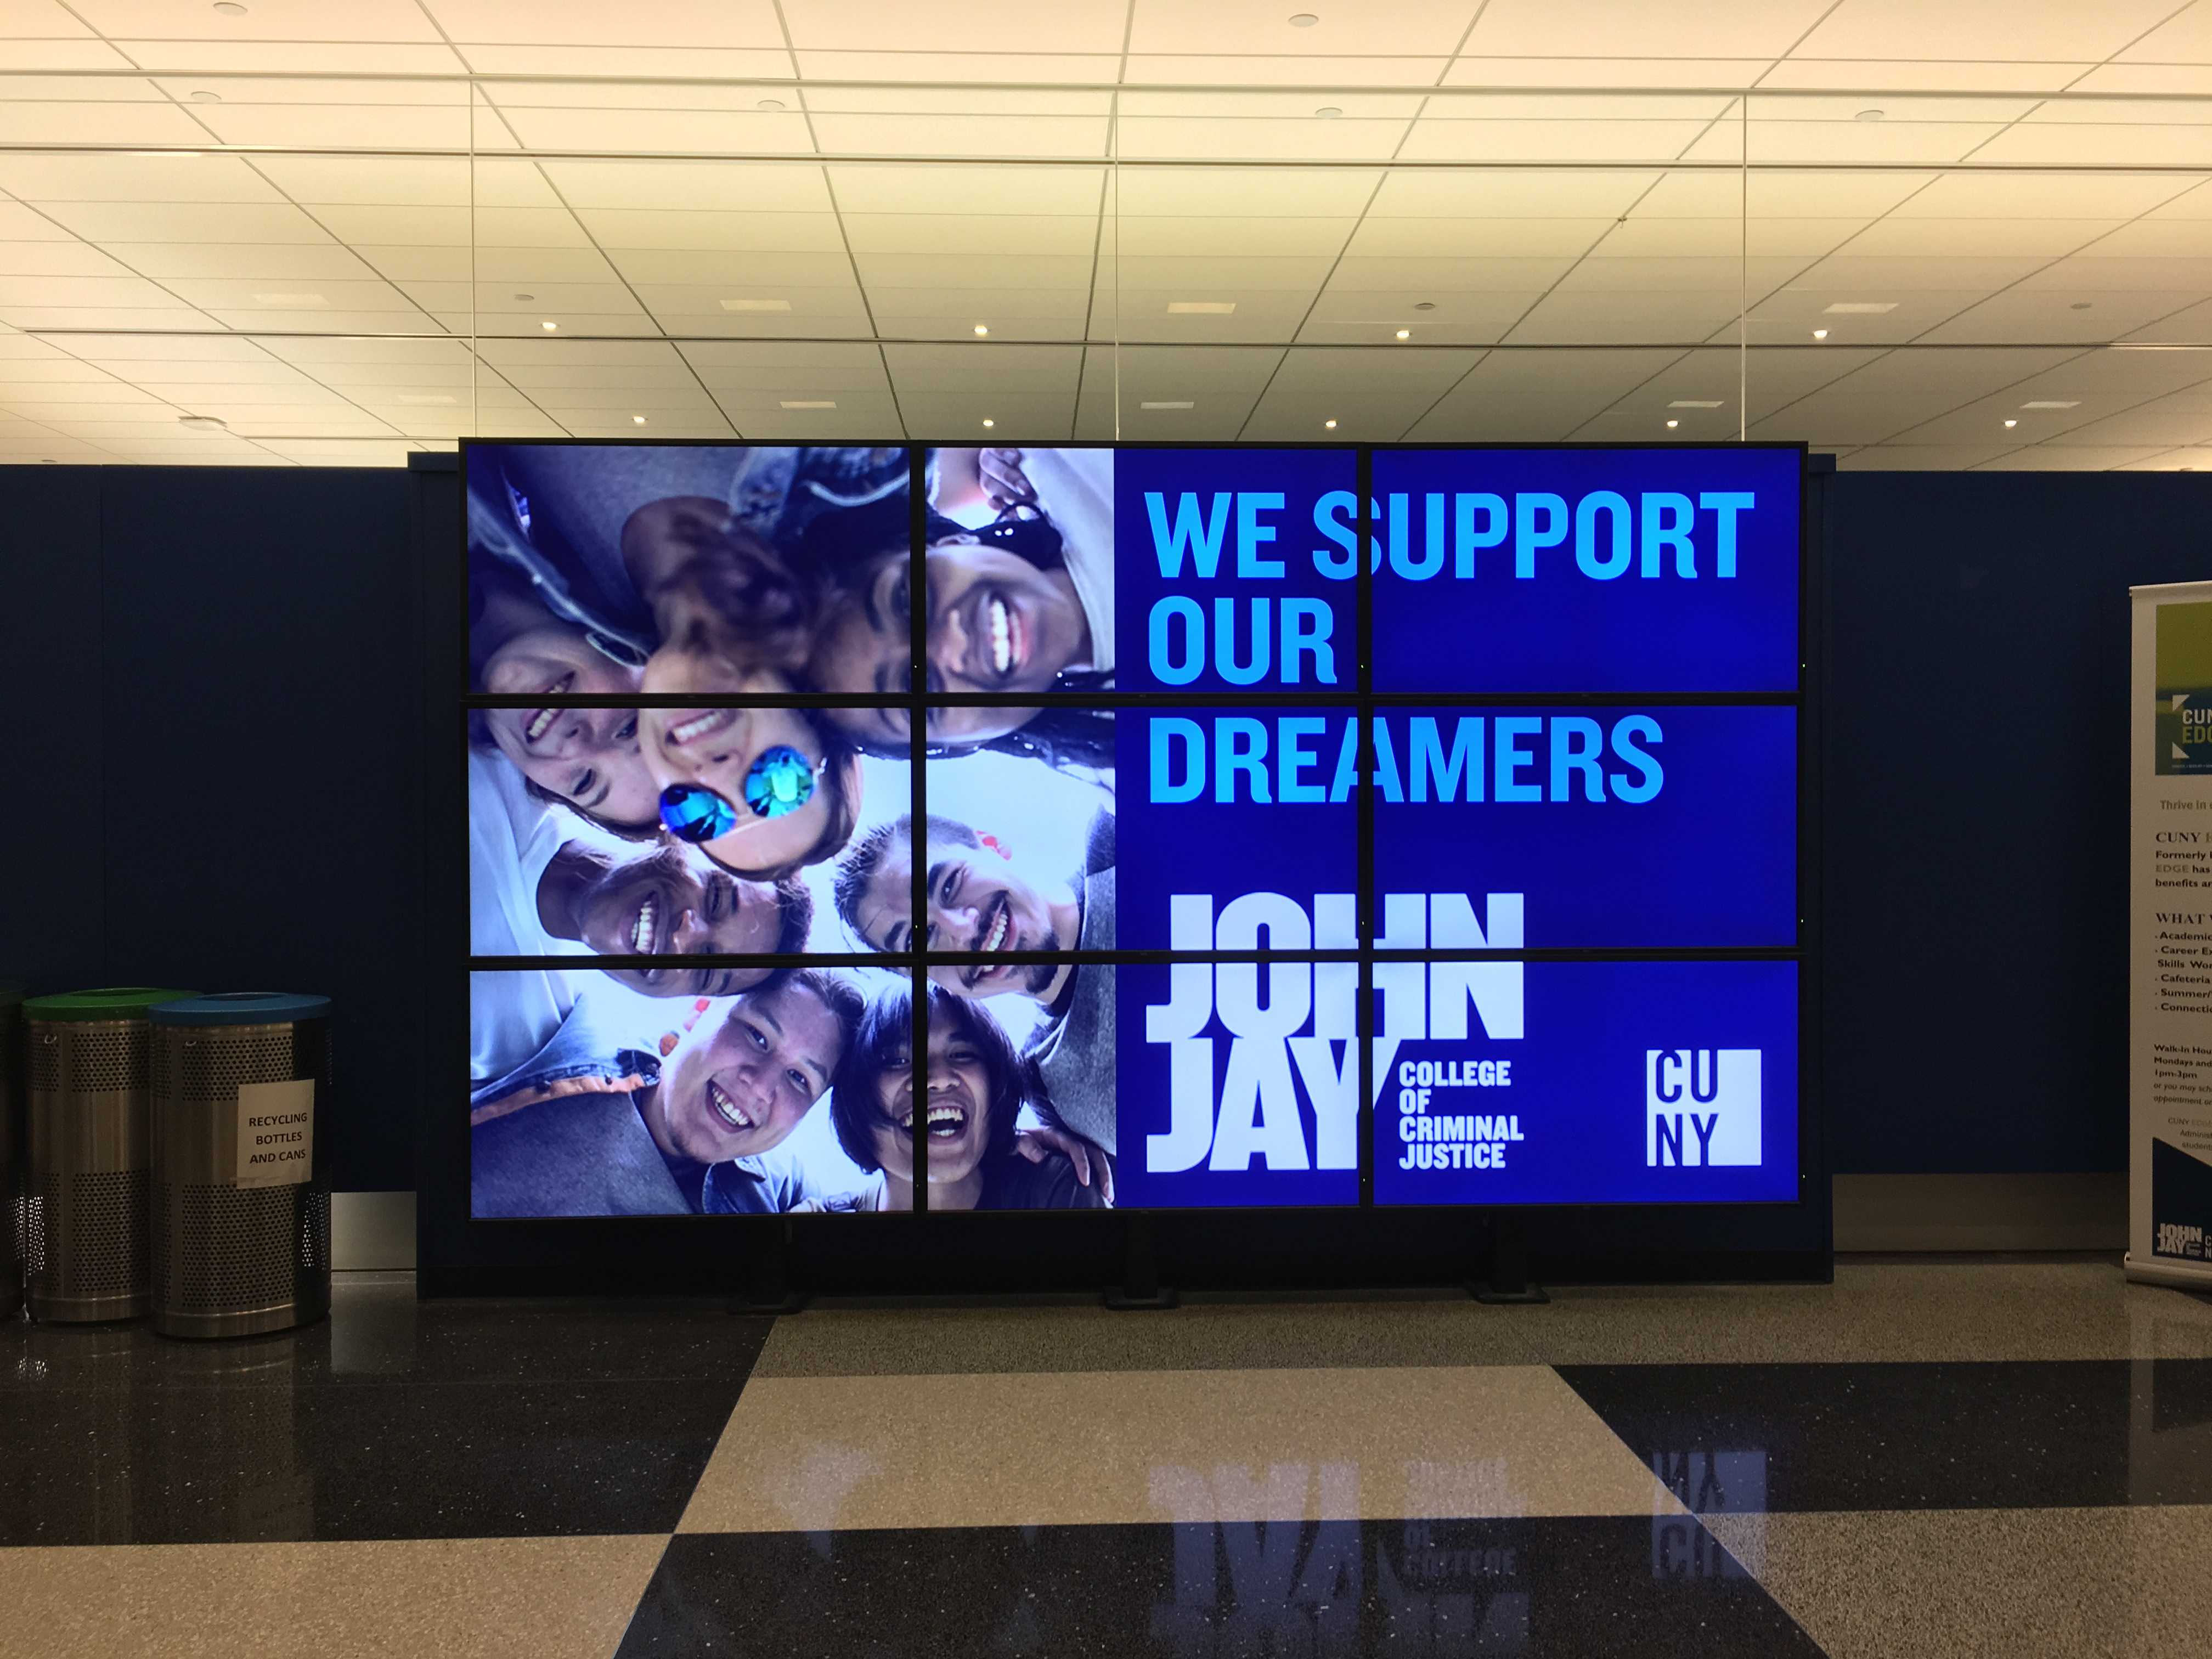 John Jay Supports Our DREAMers Photo: Emily Reyes